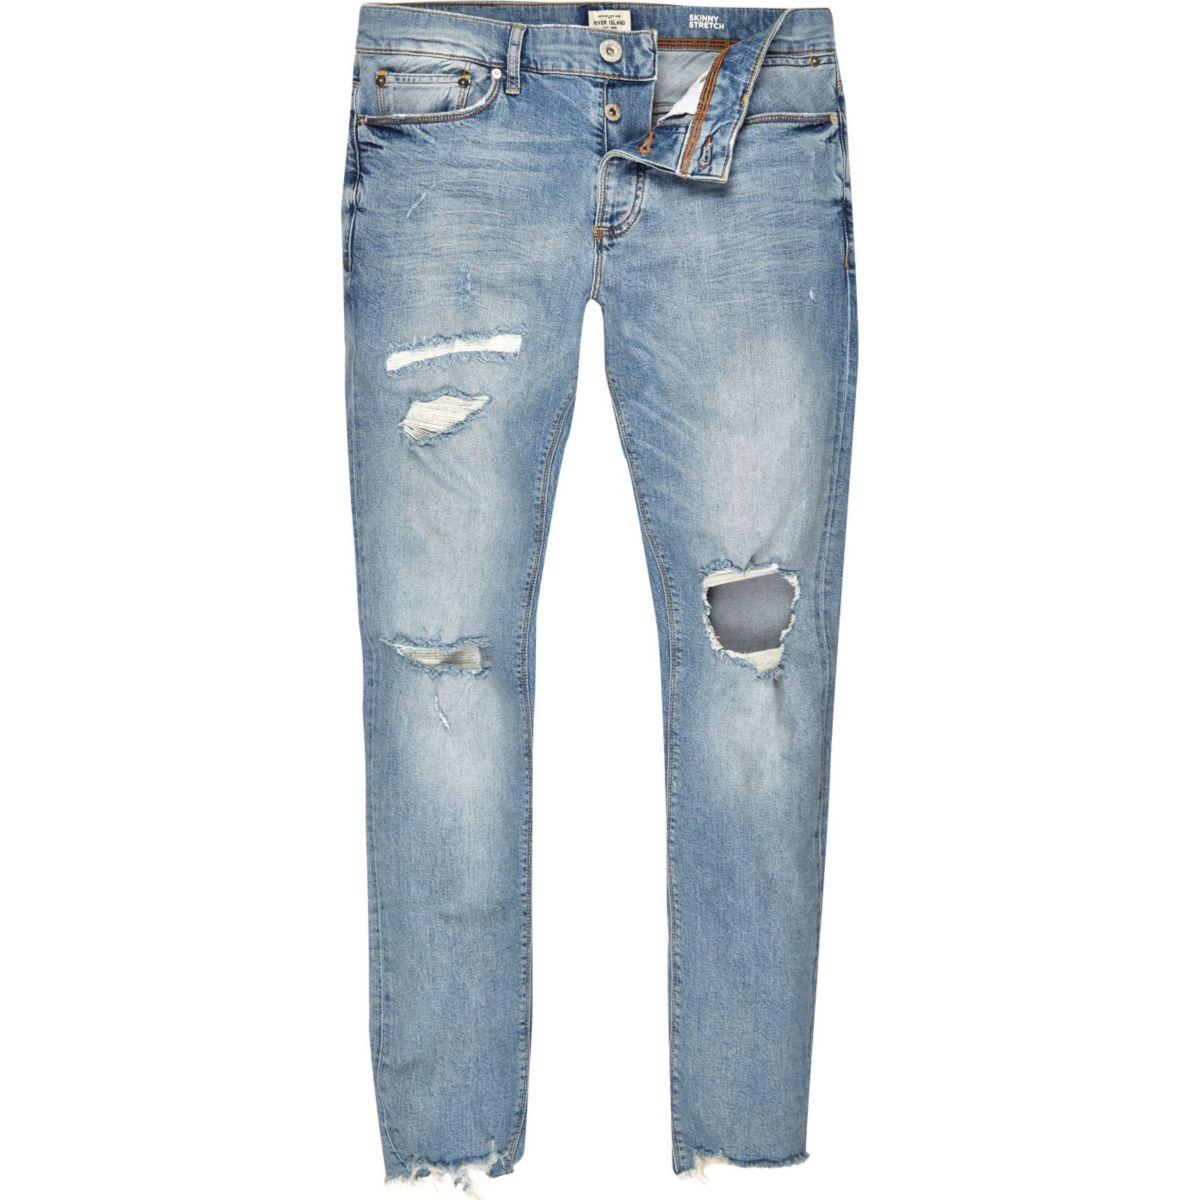 Old Navy has a ripped jeans for men assortment that gives you the latest trends. Choose from our men's distressed jeans collection and enjoy fashionable attire at an amazing price.